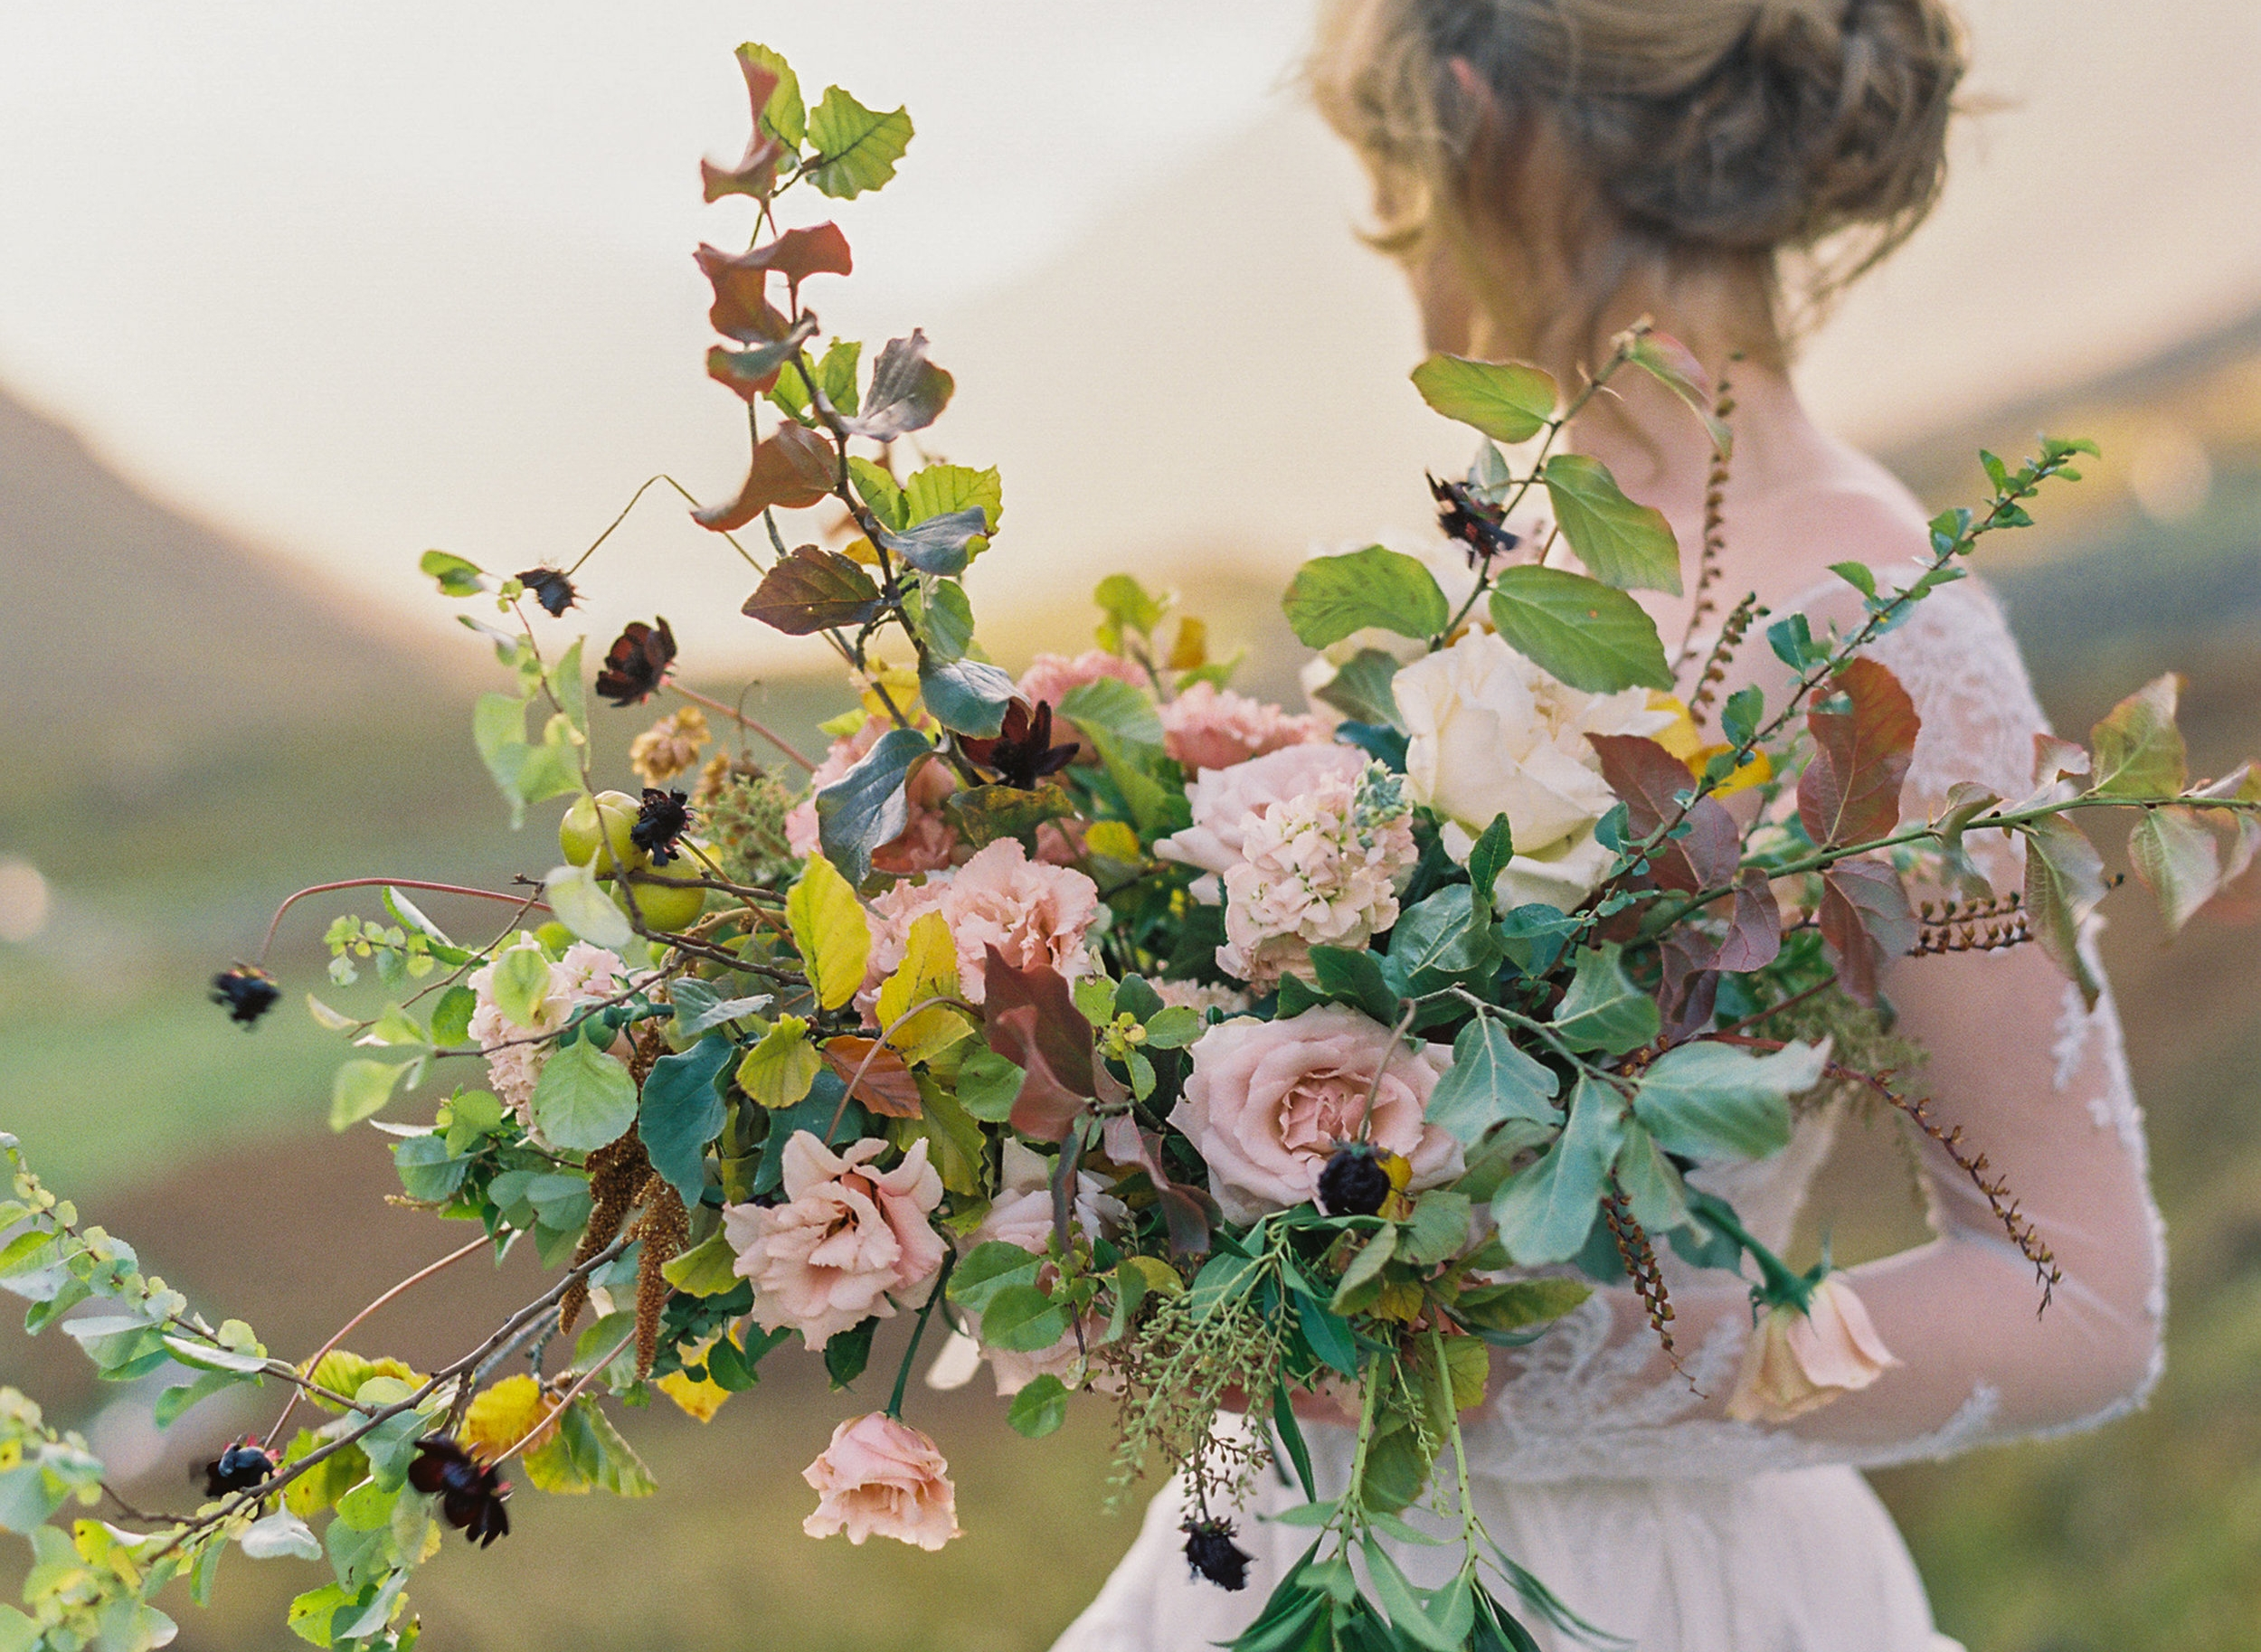 Get creative - Learn more about hand tie bouquets